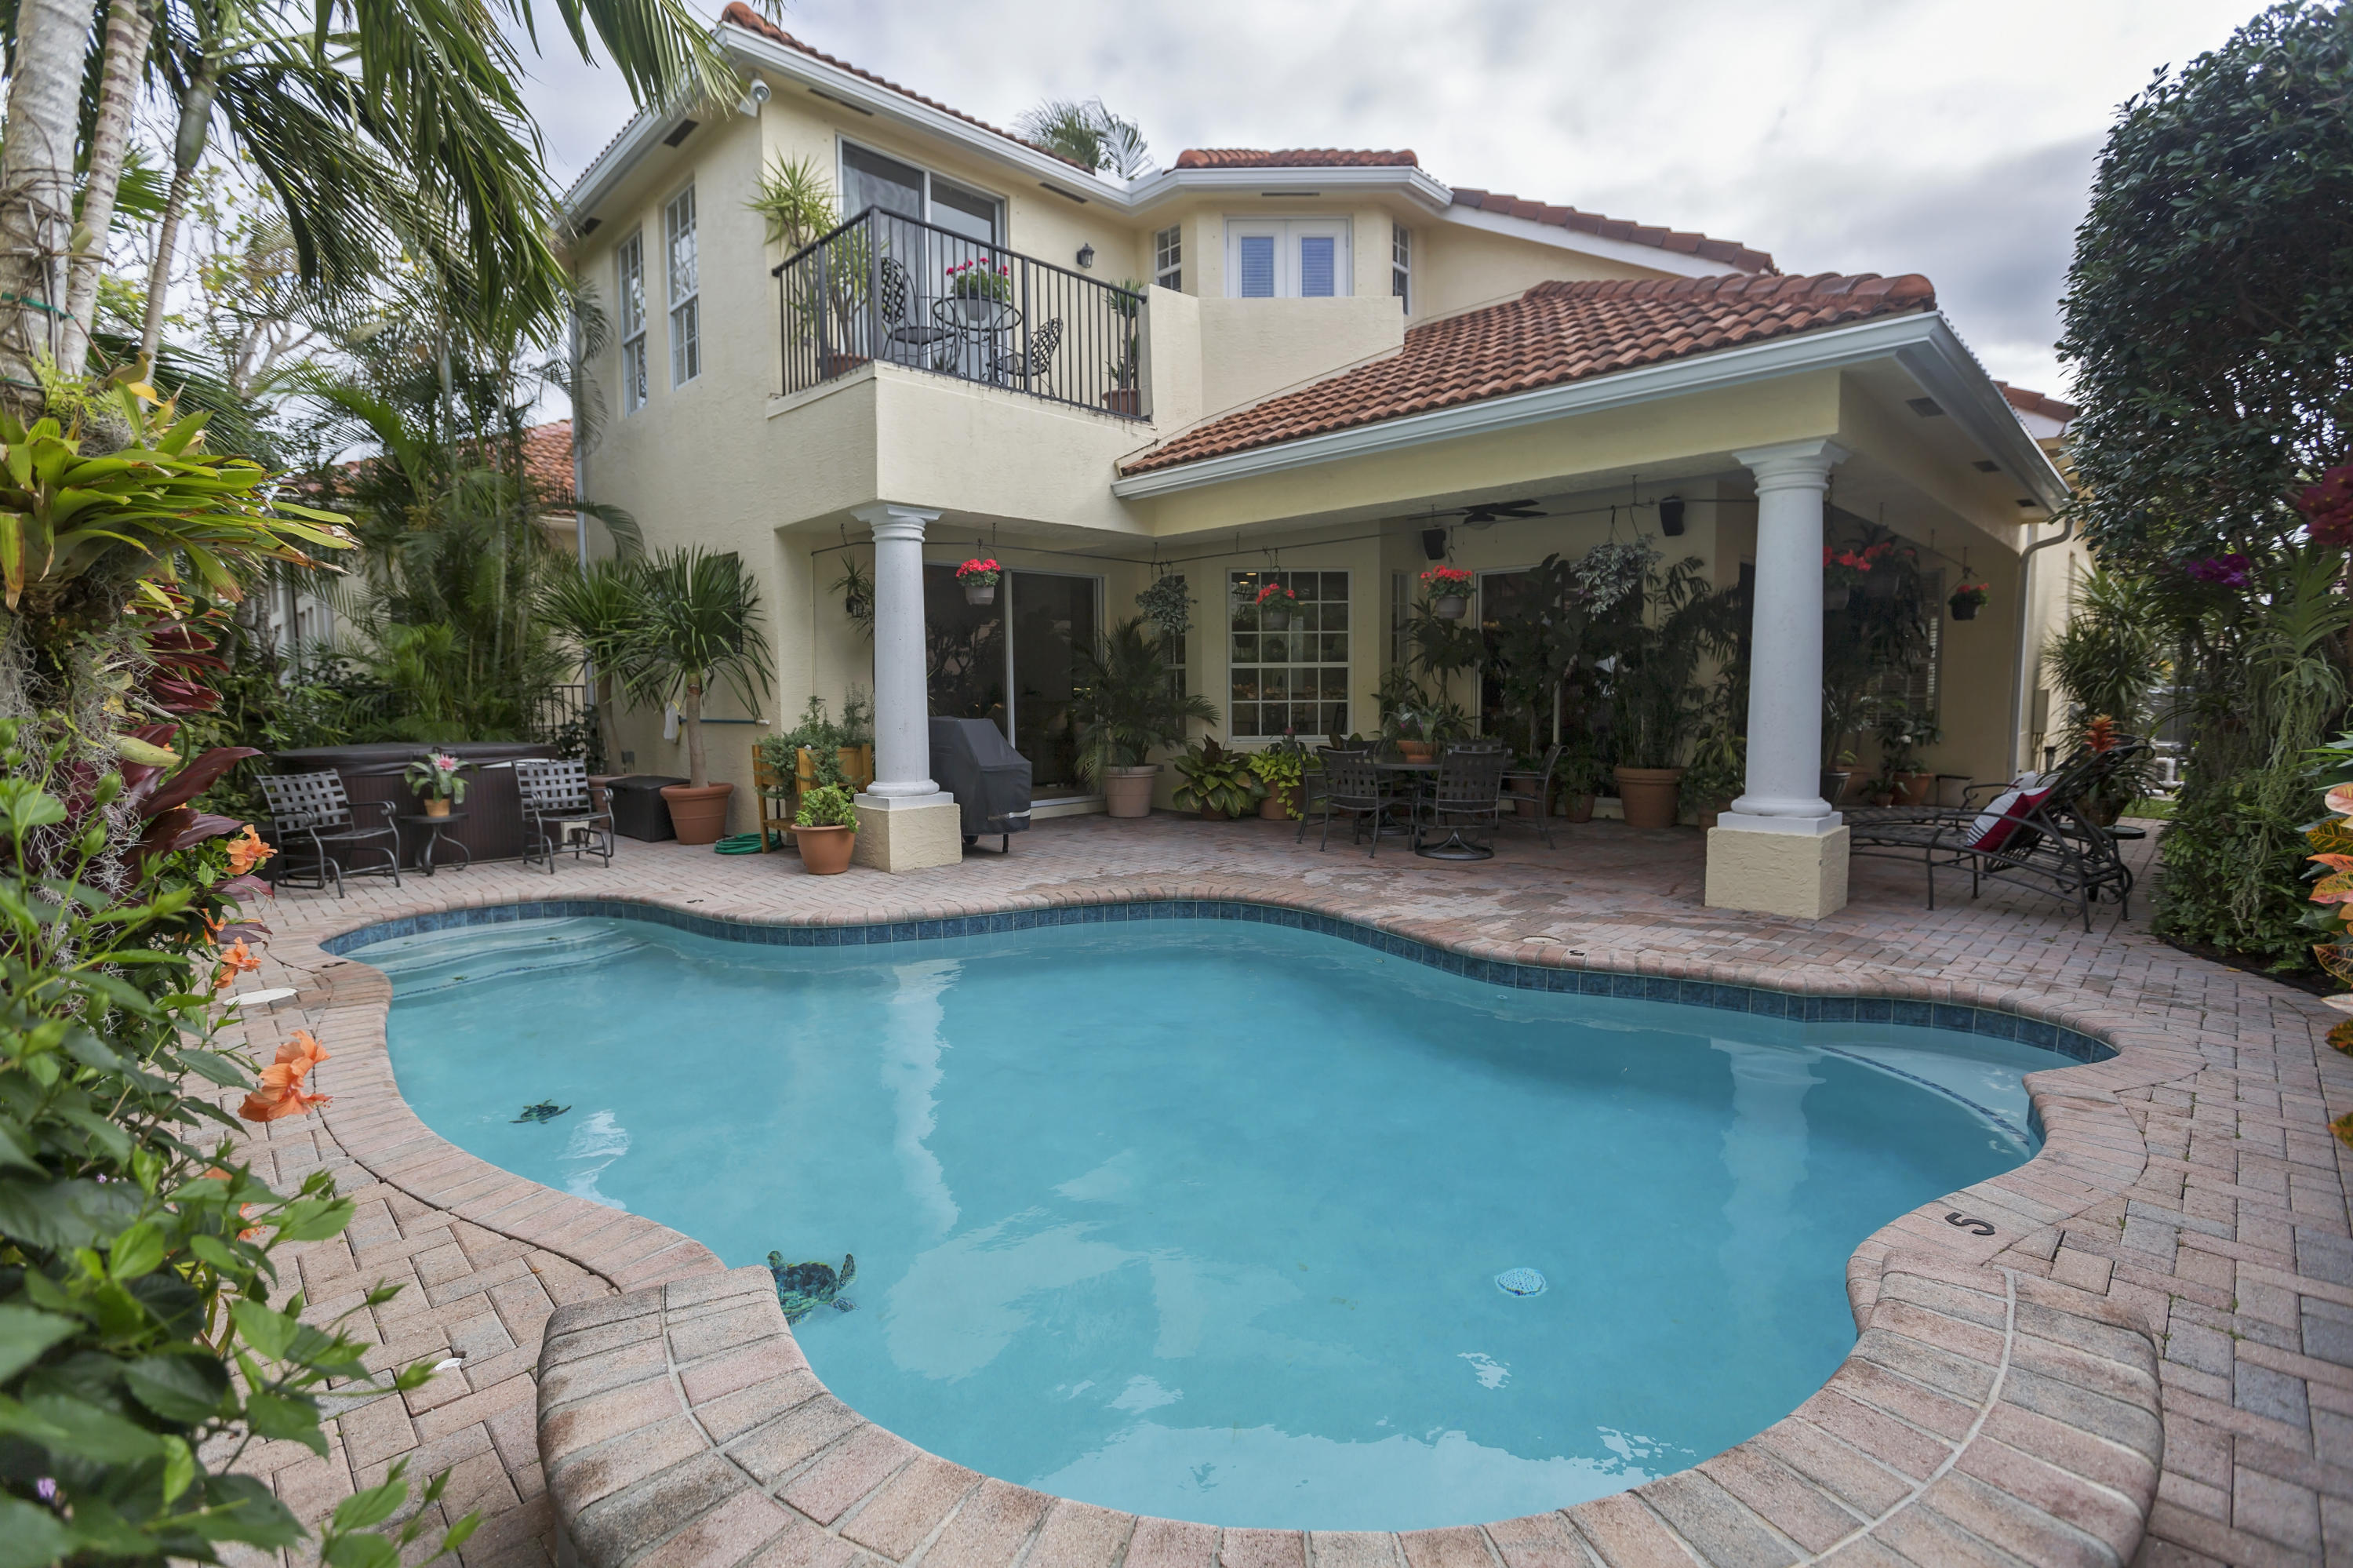 735 Sandy Point Lane, North Palm Beach, Florida 33410, 4 Bedrooms Bedrooms, ,3.1 BathroomsBathrooms,A,Single family,Sandy Point,RX-10480529